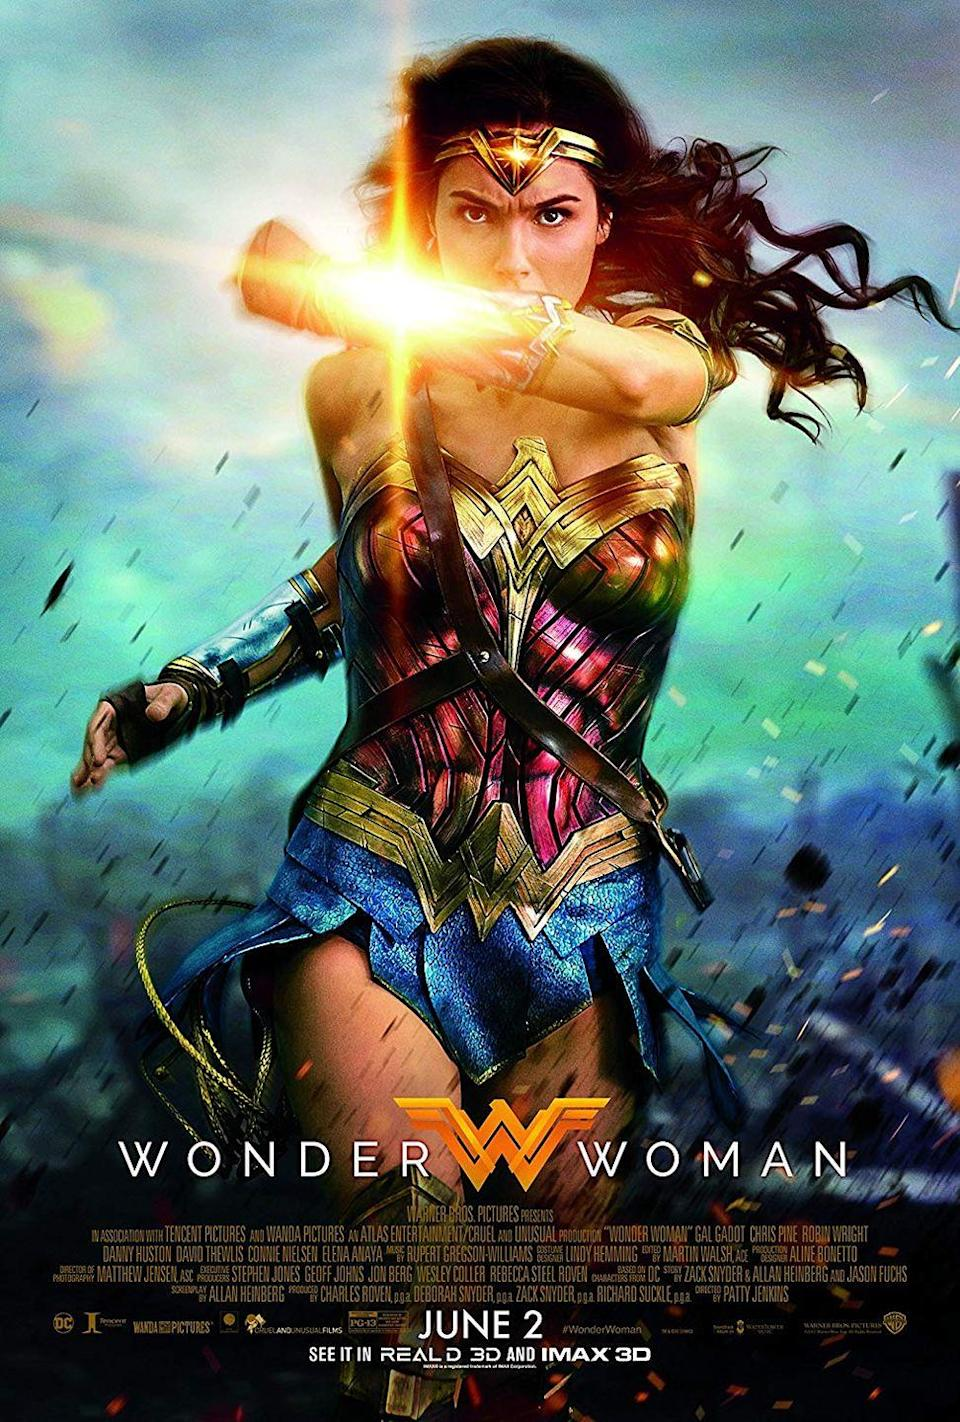 <p><em>Wonder Woman</em> is not only a triumph for the DC Extended Universe, but for Hollywood in general. The film and its director Patty Jenkins are credited with breaking the superhero glass ceiling. Jenkins is the second female director to make a movie with a budget of more than $100 million, and she holds the record for the largest opening of all time for a female director. And all of these firsts are both long-overdue and well-deserved. <em>Wonder Woman</em> is a stunning-looking film with an empowering story, complex and lovable characters—all of which goes well beyond what's expected of the superhero genre as a whole.</p>